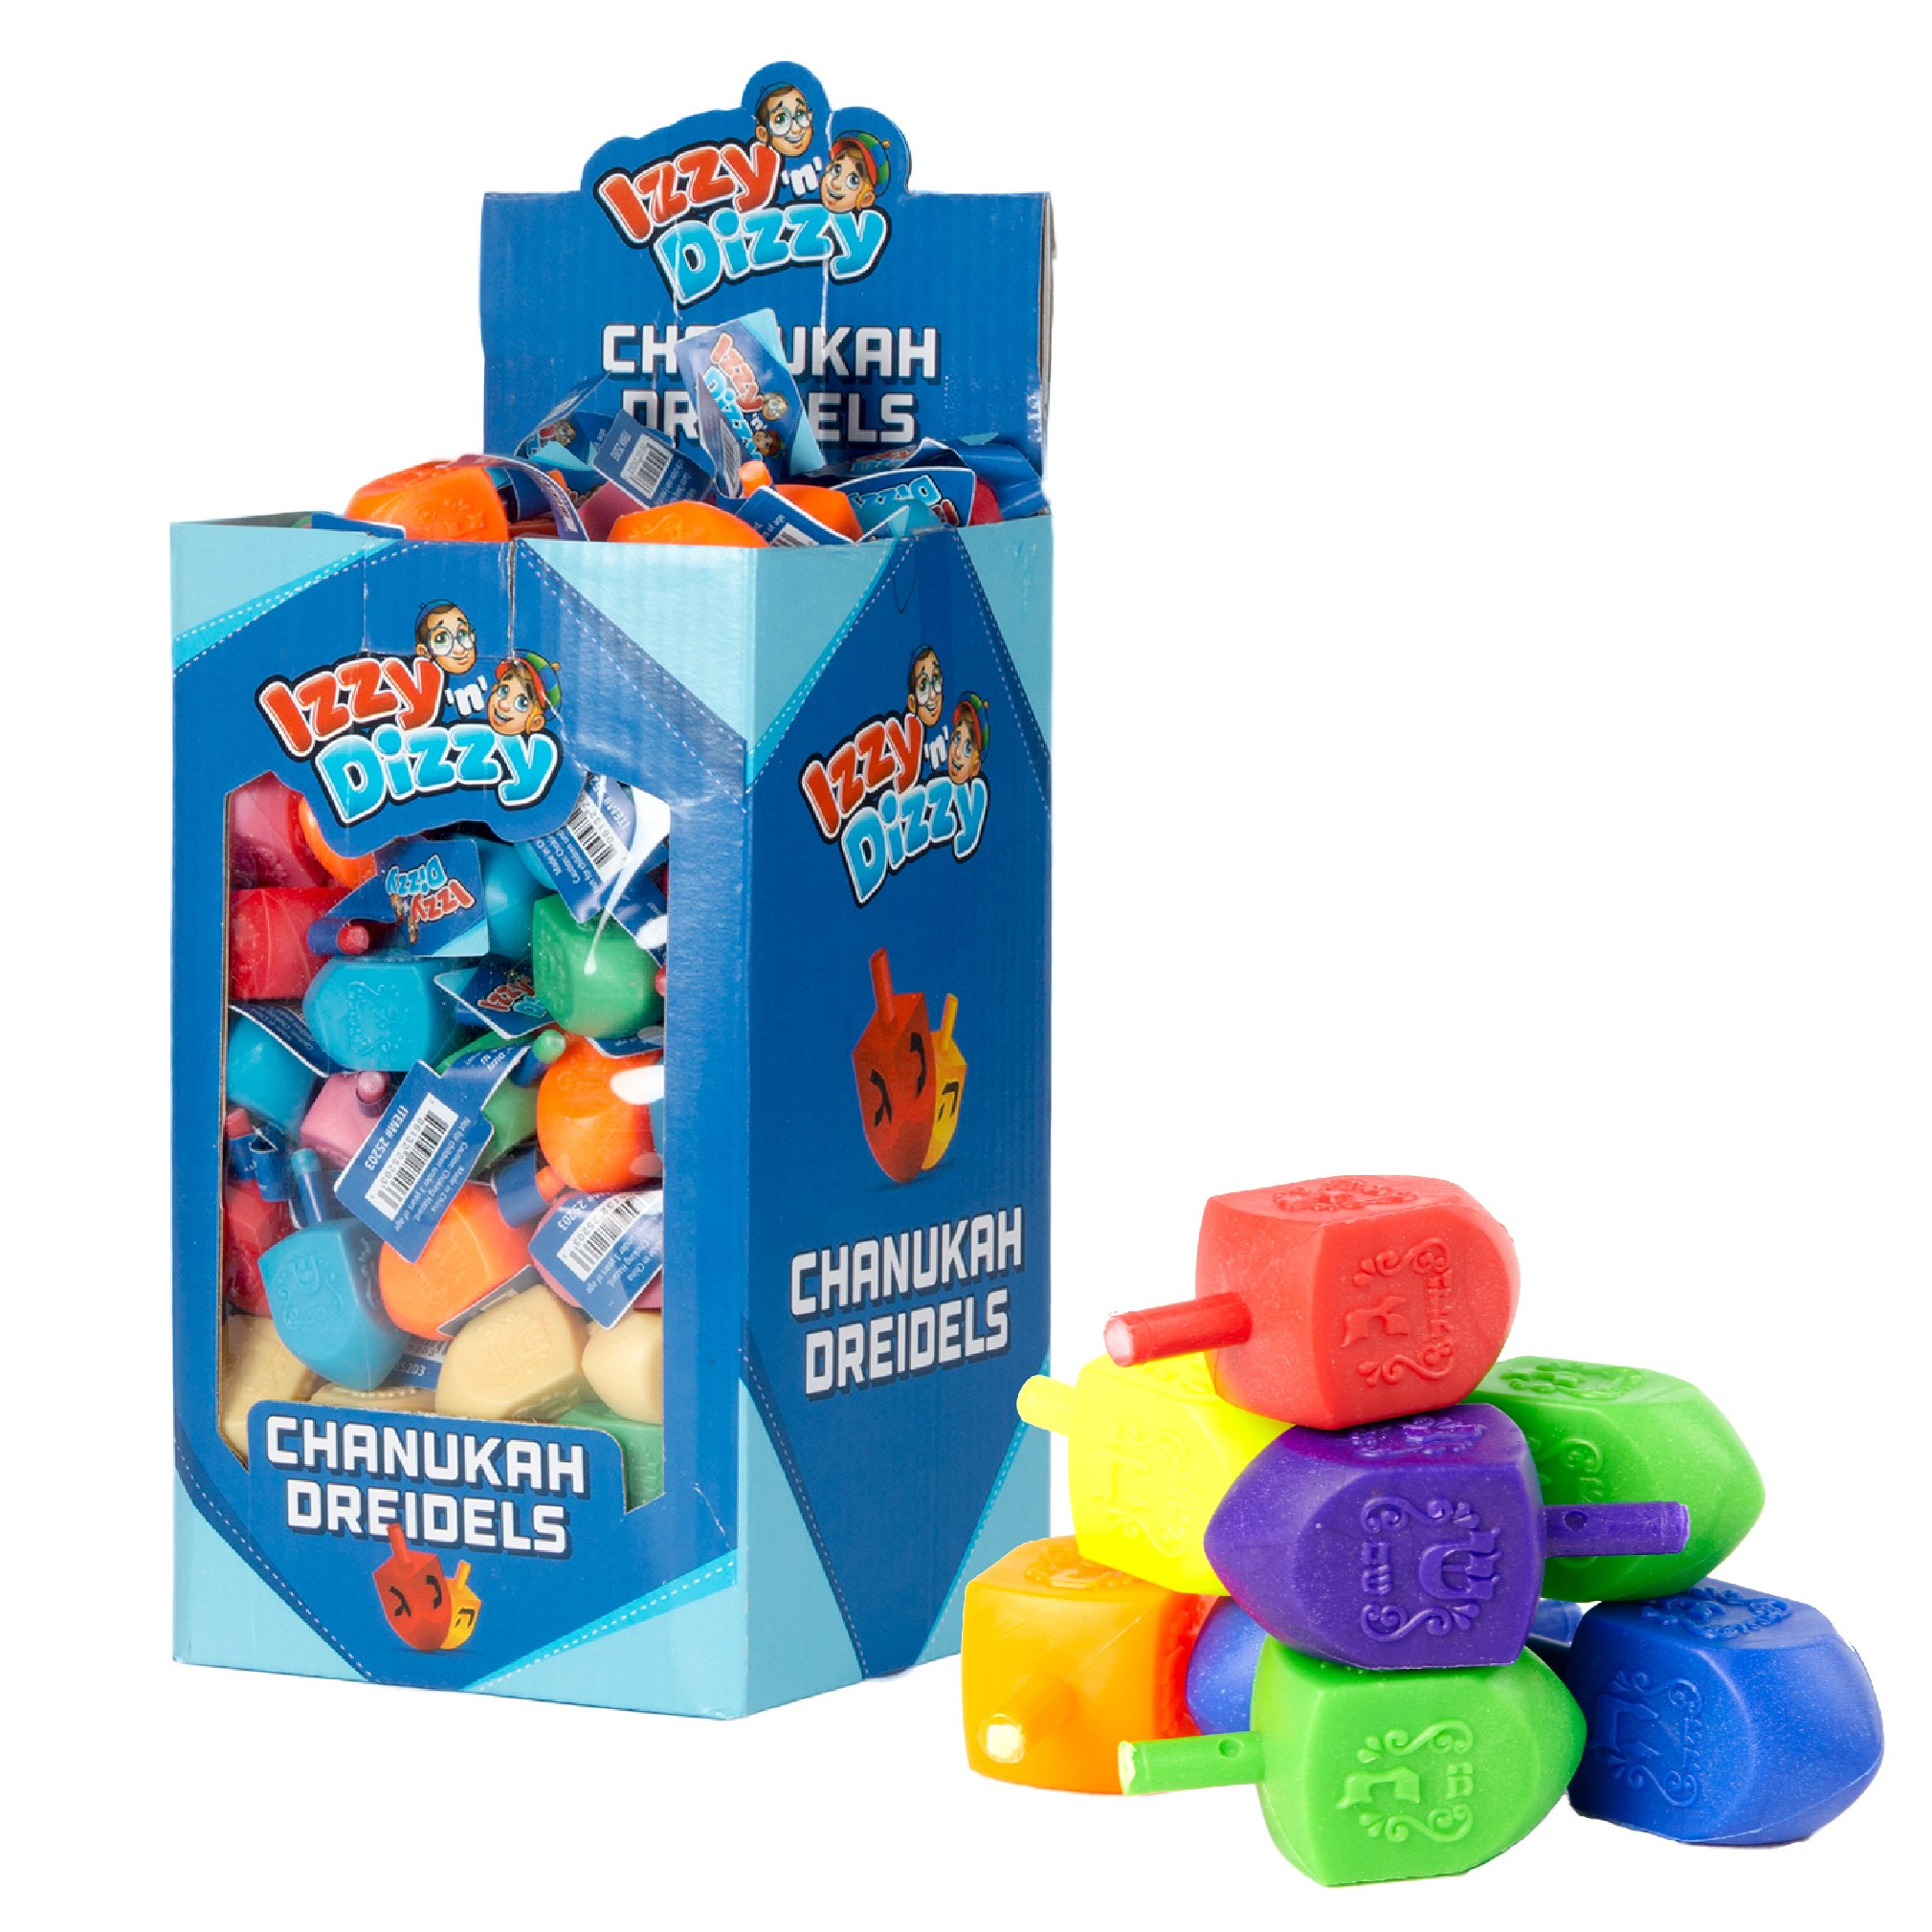 100 Medium Dreidels - Assorted Colors - Classic Chanukah Spinning Draidel Game, Gift and Prize - Bulk Value Pack - by Izzy n Dizzy